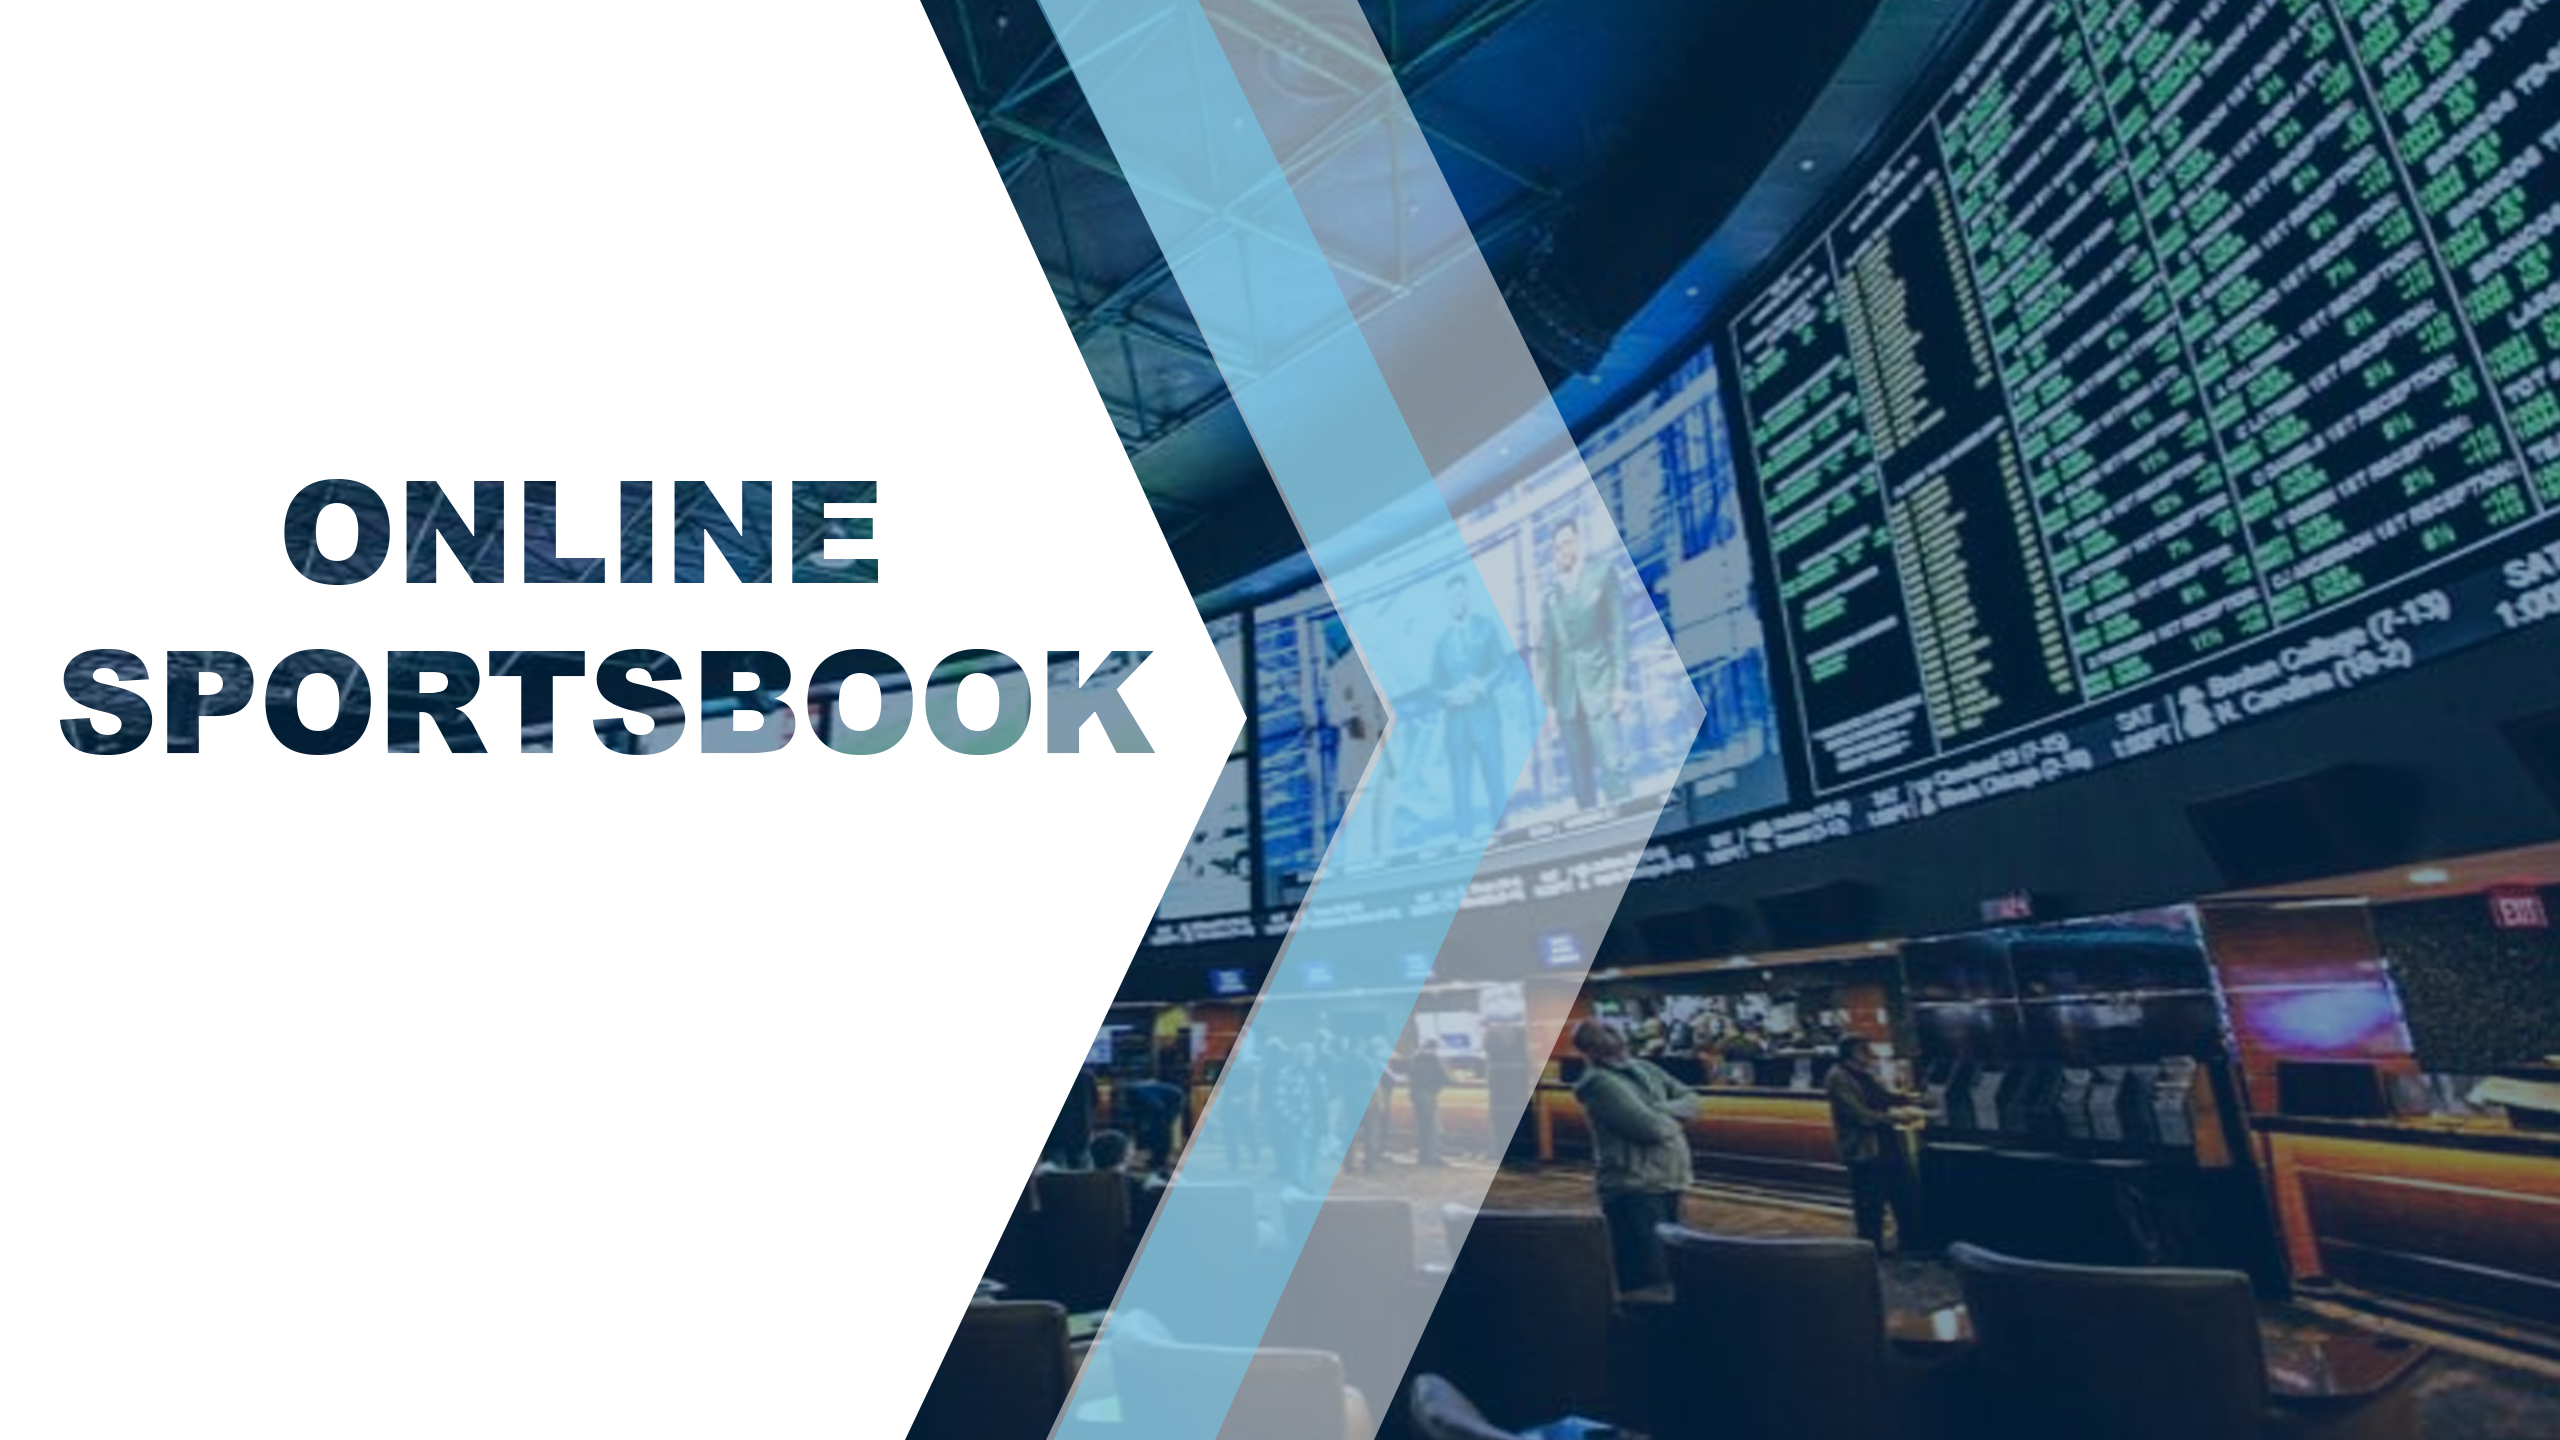 How to Start Your Online Sportsbook In 5 Easy Steps (2019) | by Merlene  Leano | New Media Services | Medium